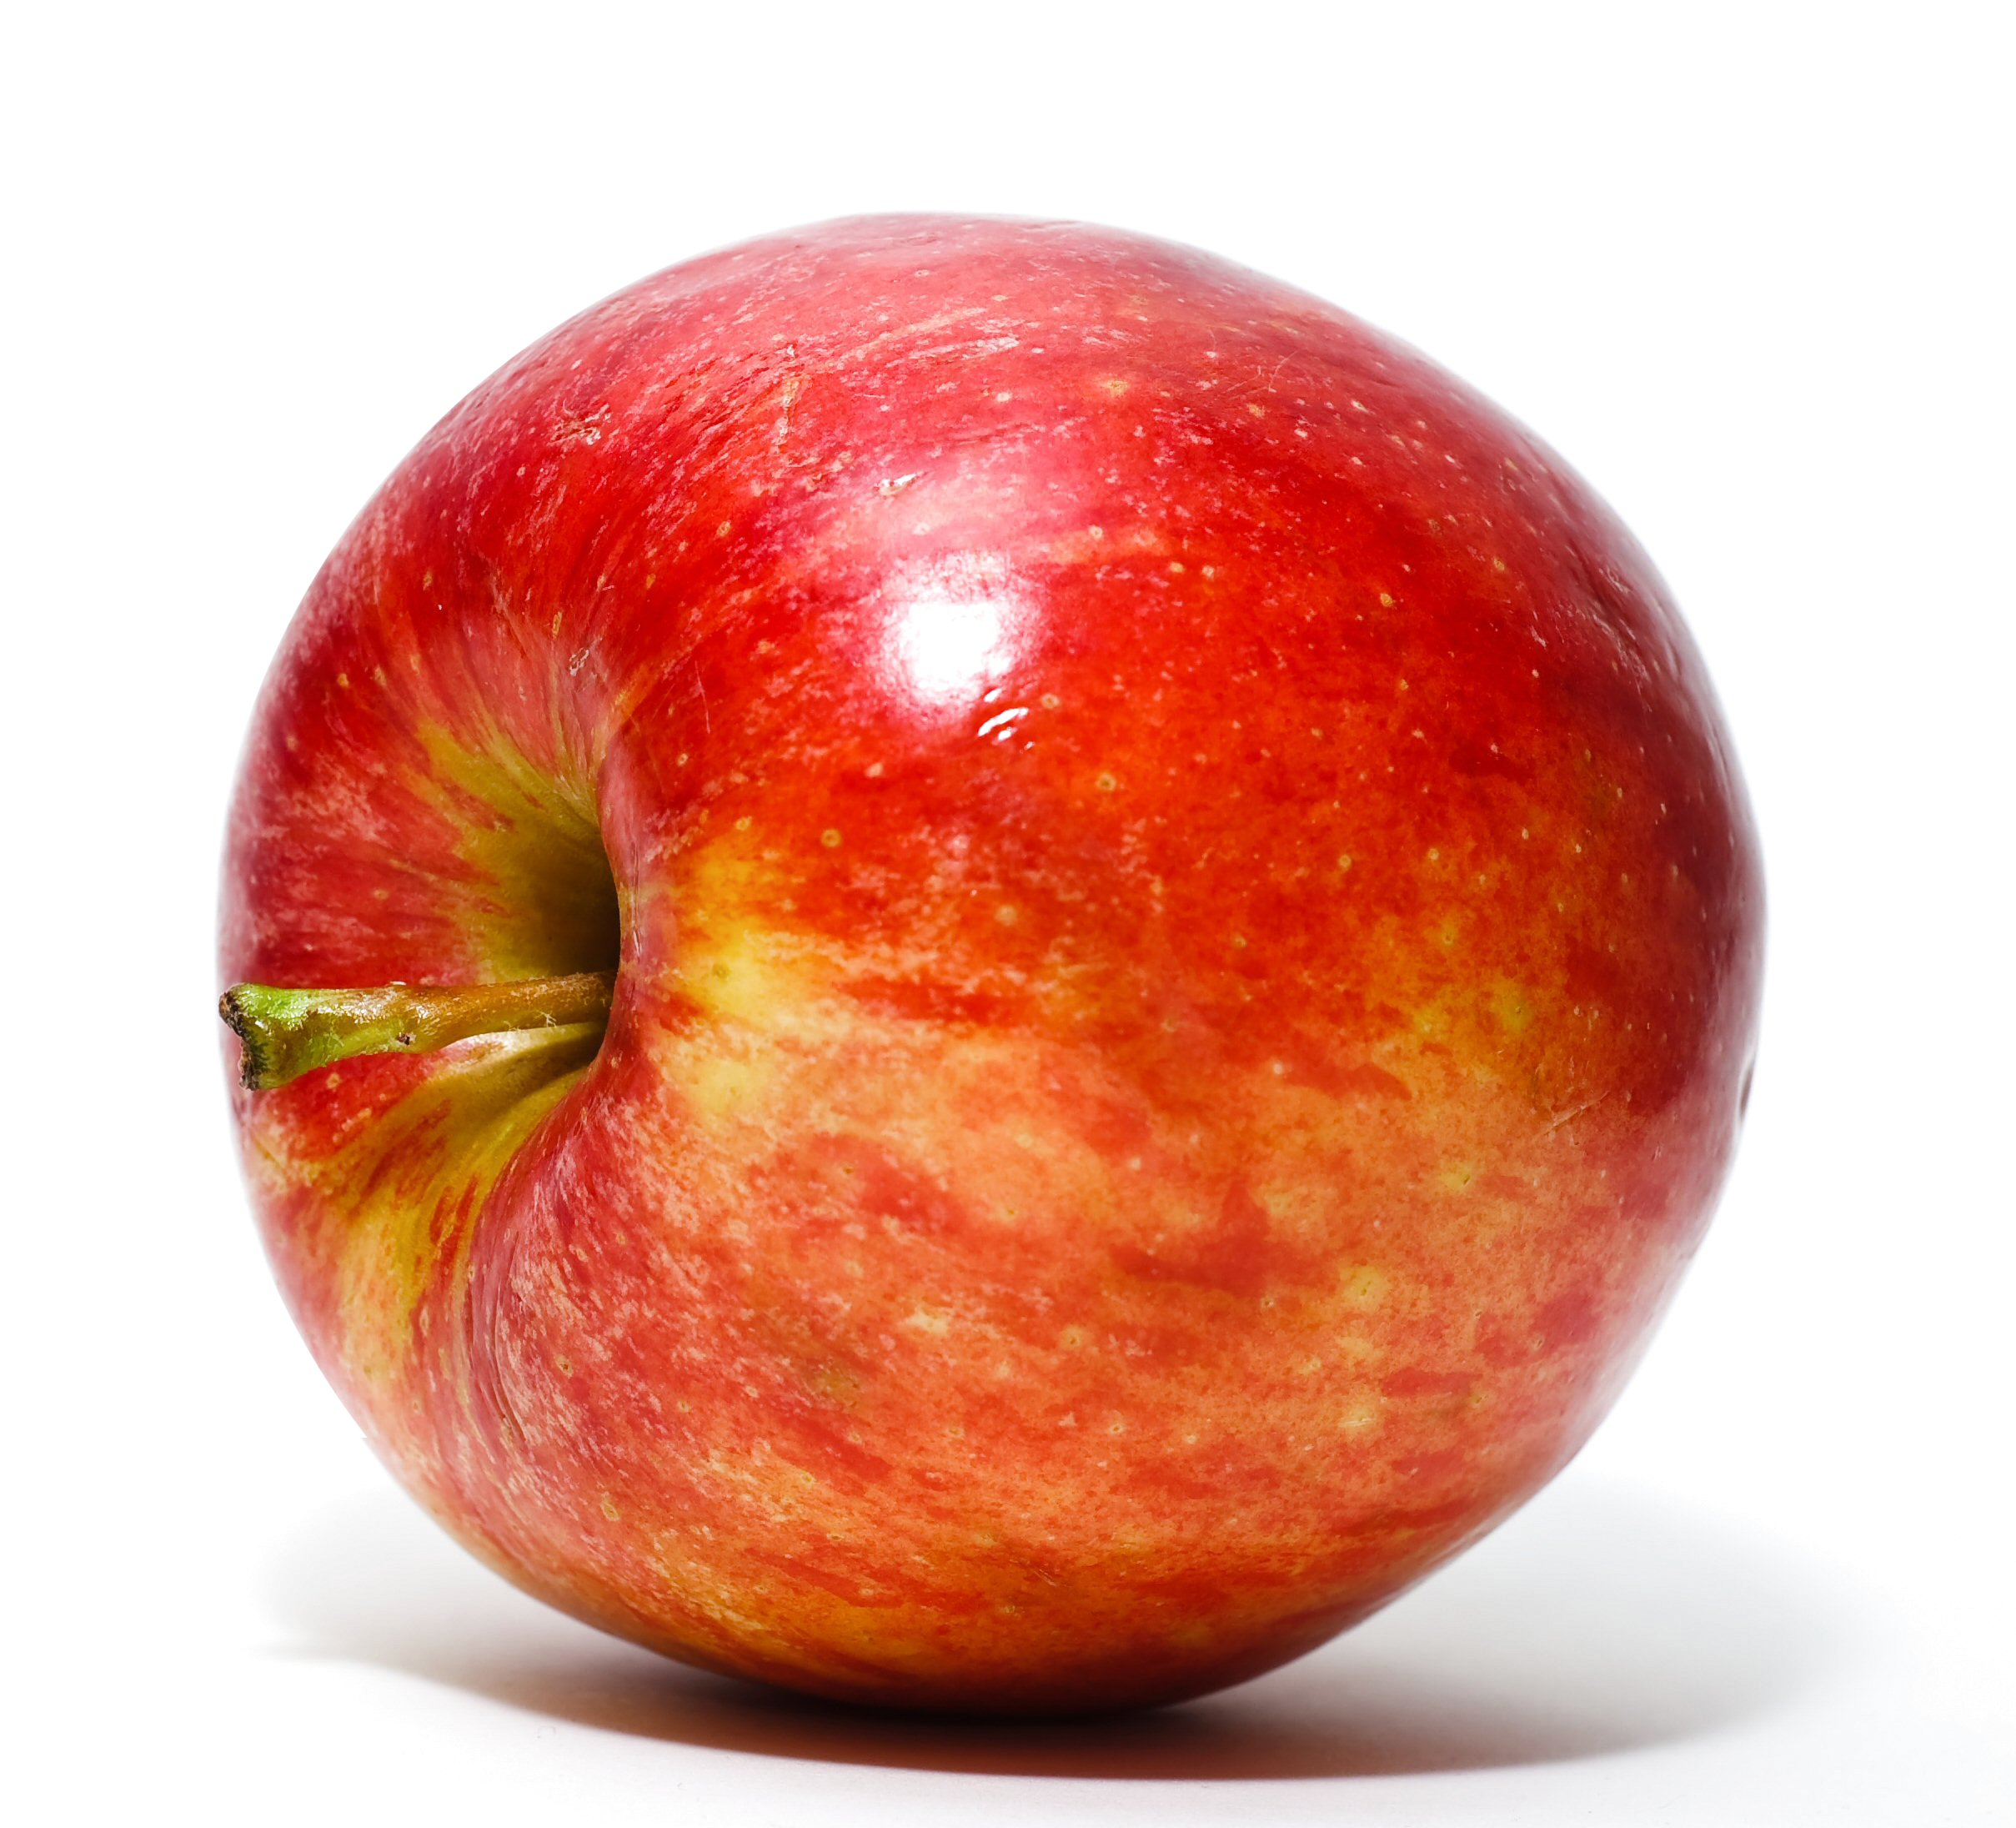 By Red_Apple.jpg: Abhijit Tembhekar from Mumbai, India derivative work: Afanasovich (Red_Apple.jpg) [CC-BY-2.0 (http://creativecommons.org/licenses/by/2.0)], via Wikimedia Commons